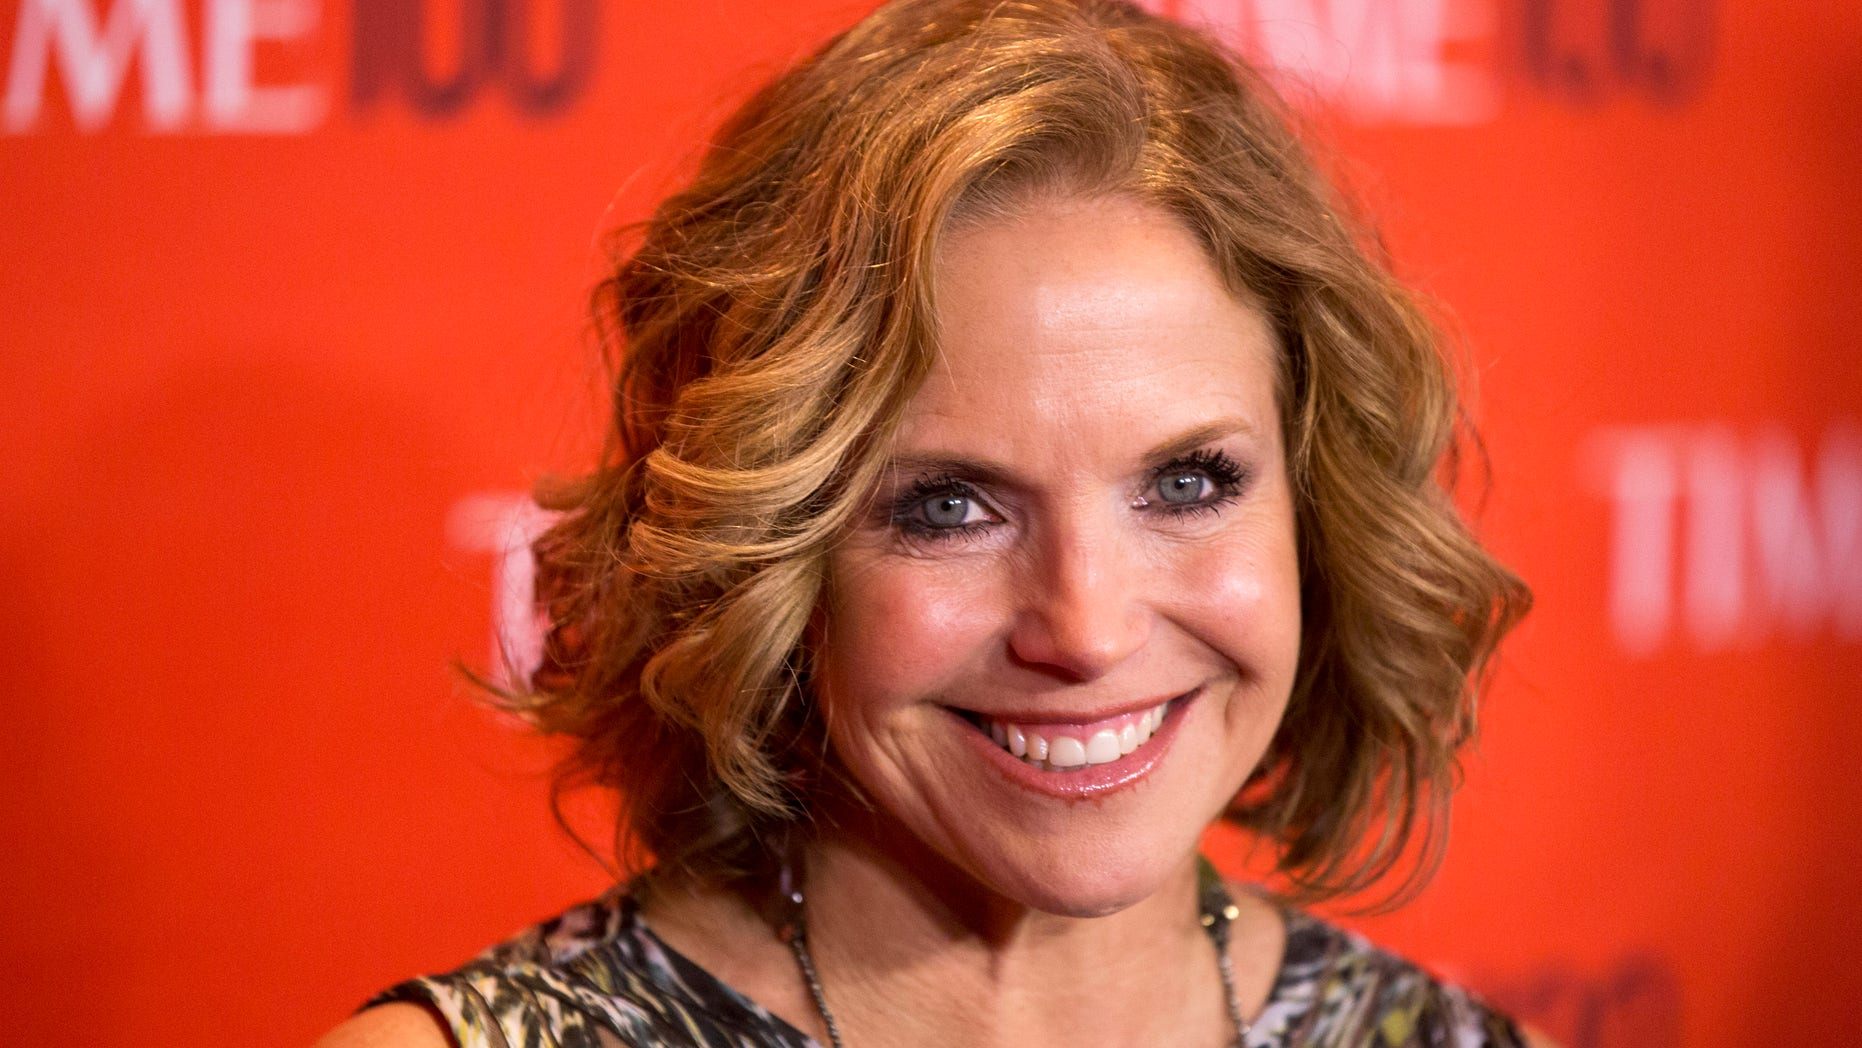 April 29, 2014. Journalist Katie Couric arrives at the Time 100 gala celebrating the magazine's naming of the 100 most influential people in the world for the past year in New York.